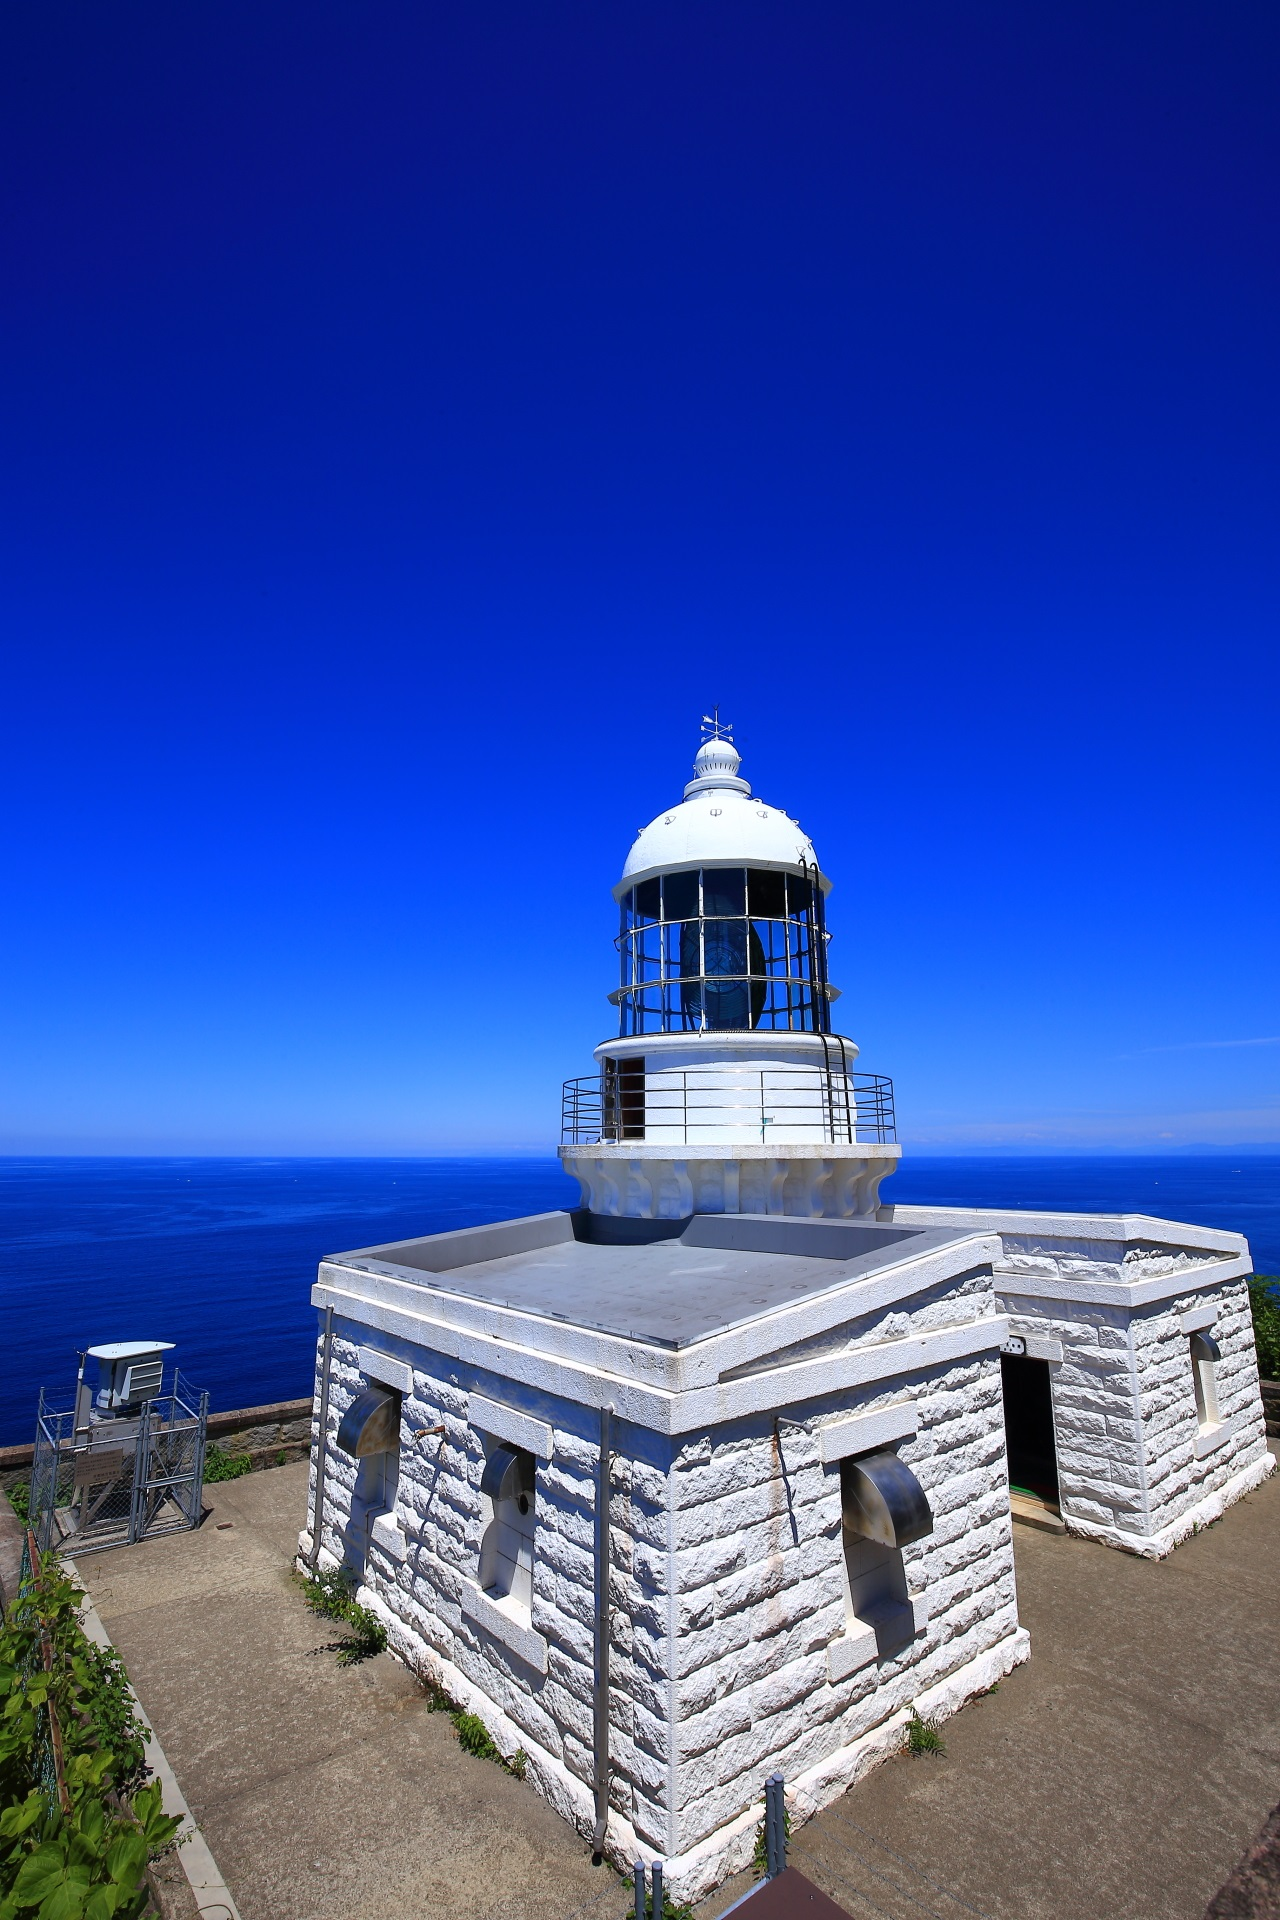 Kyoga-Misaki Lighthouse in Kyotango and blue sea and blue sky